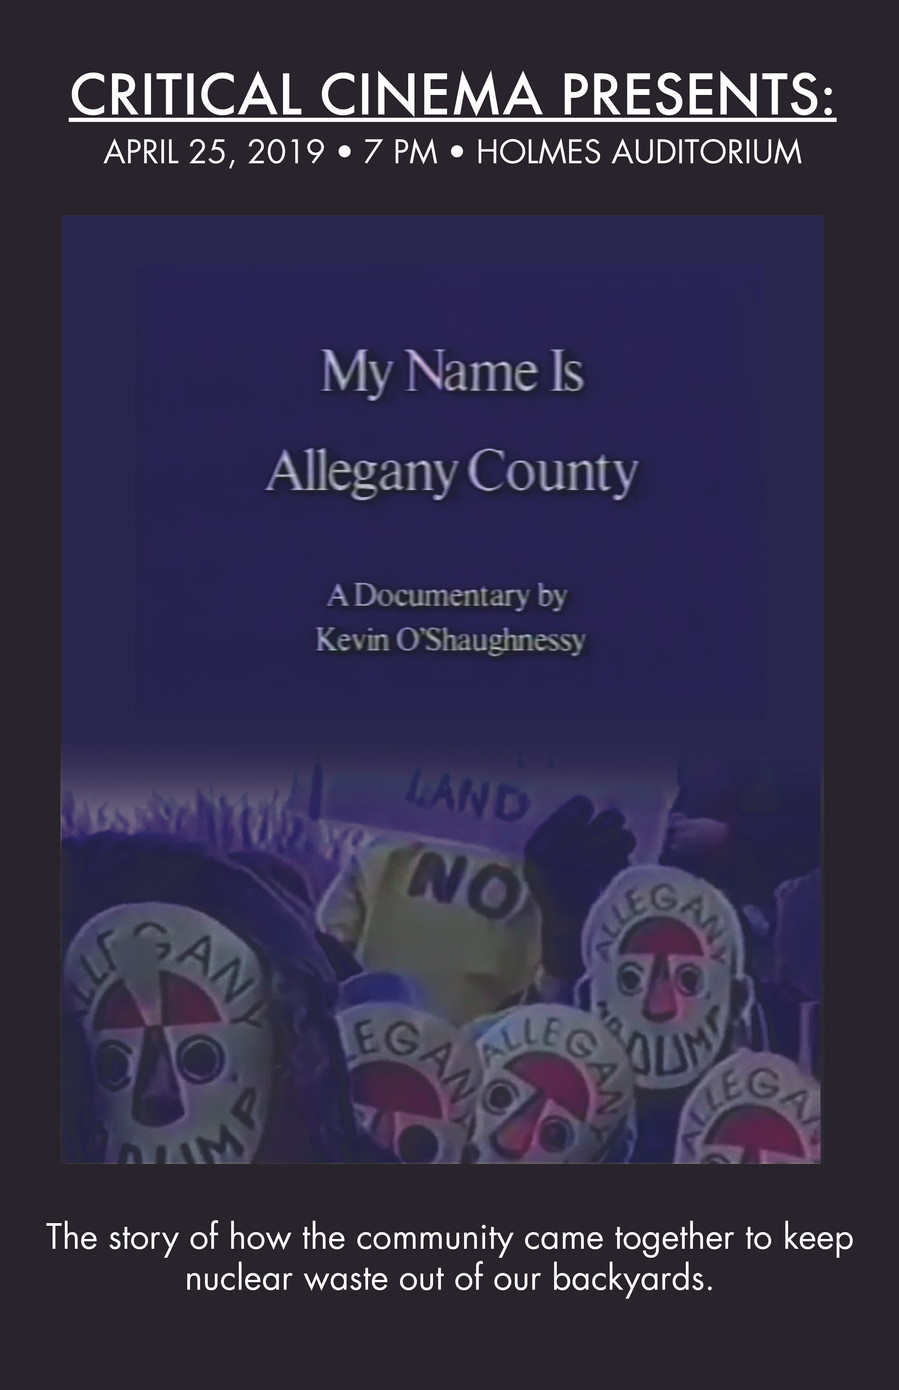 My Name is Allegany